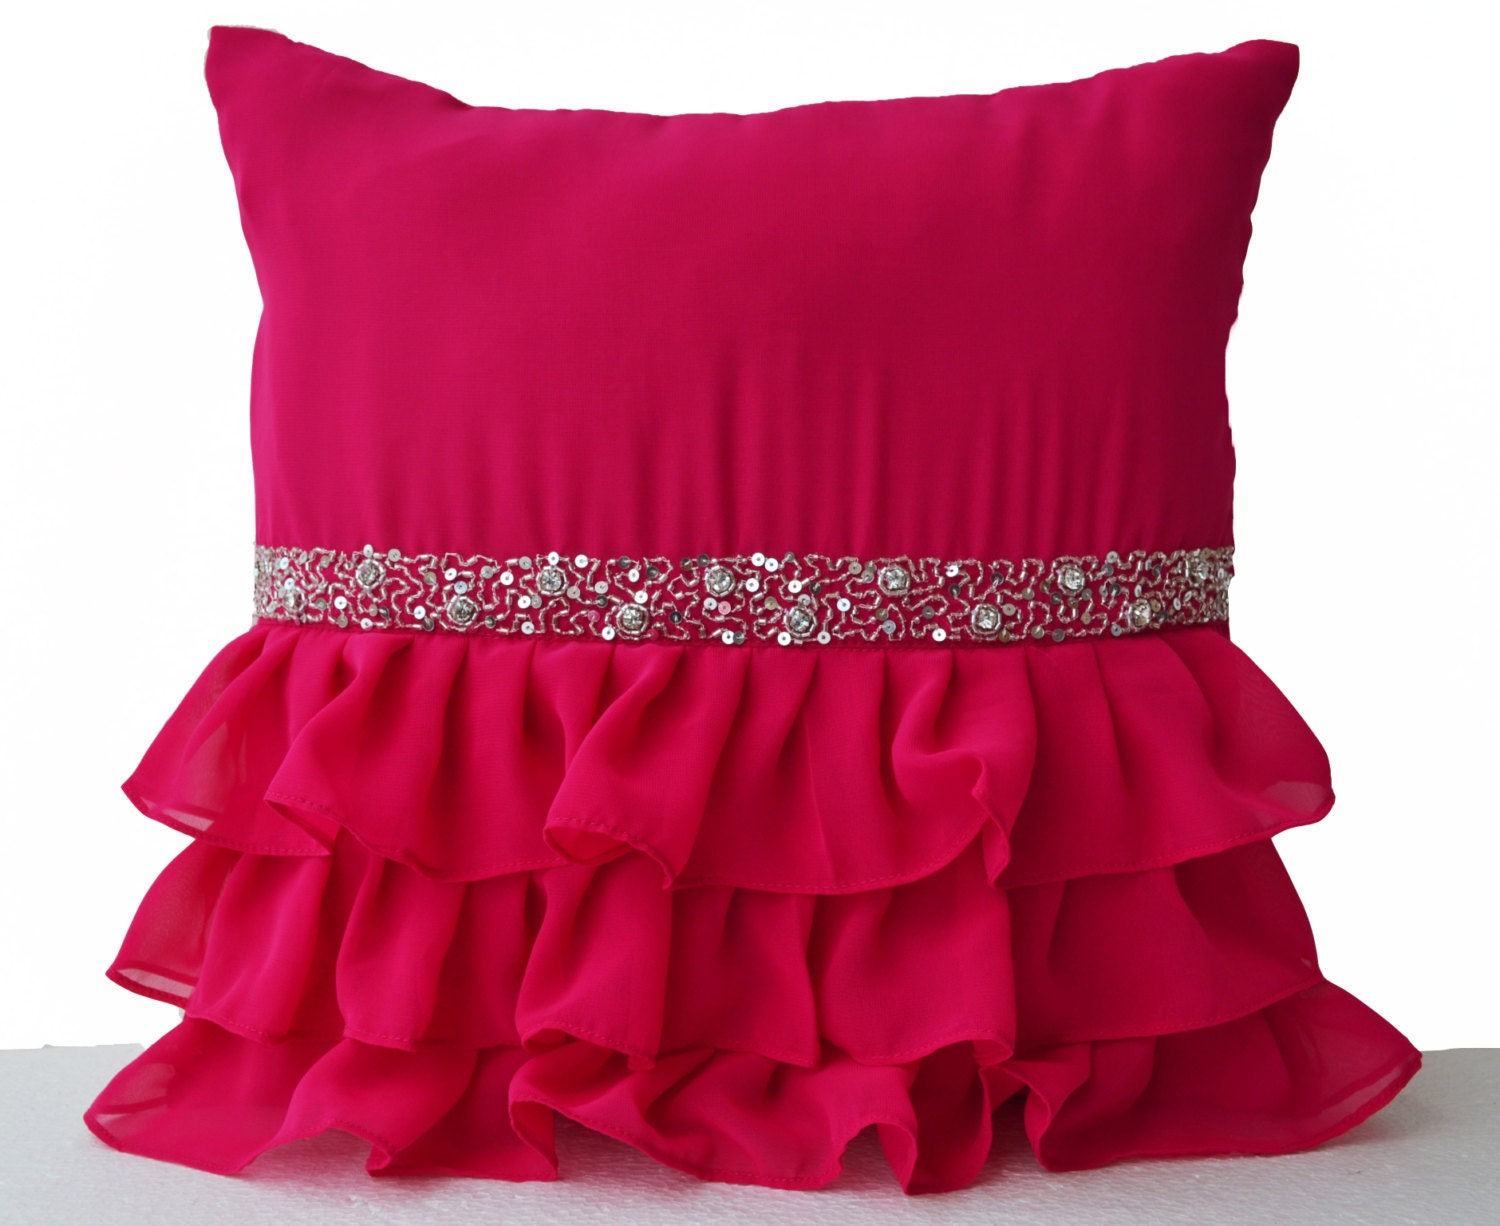 cute hot pink ruffle sequin throw pillow 16x16 decorative. Black Bedroom Furniture Sets. Home Design Ideas